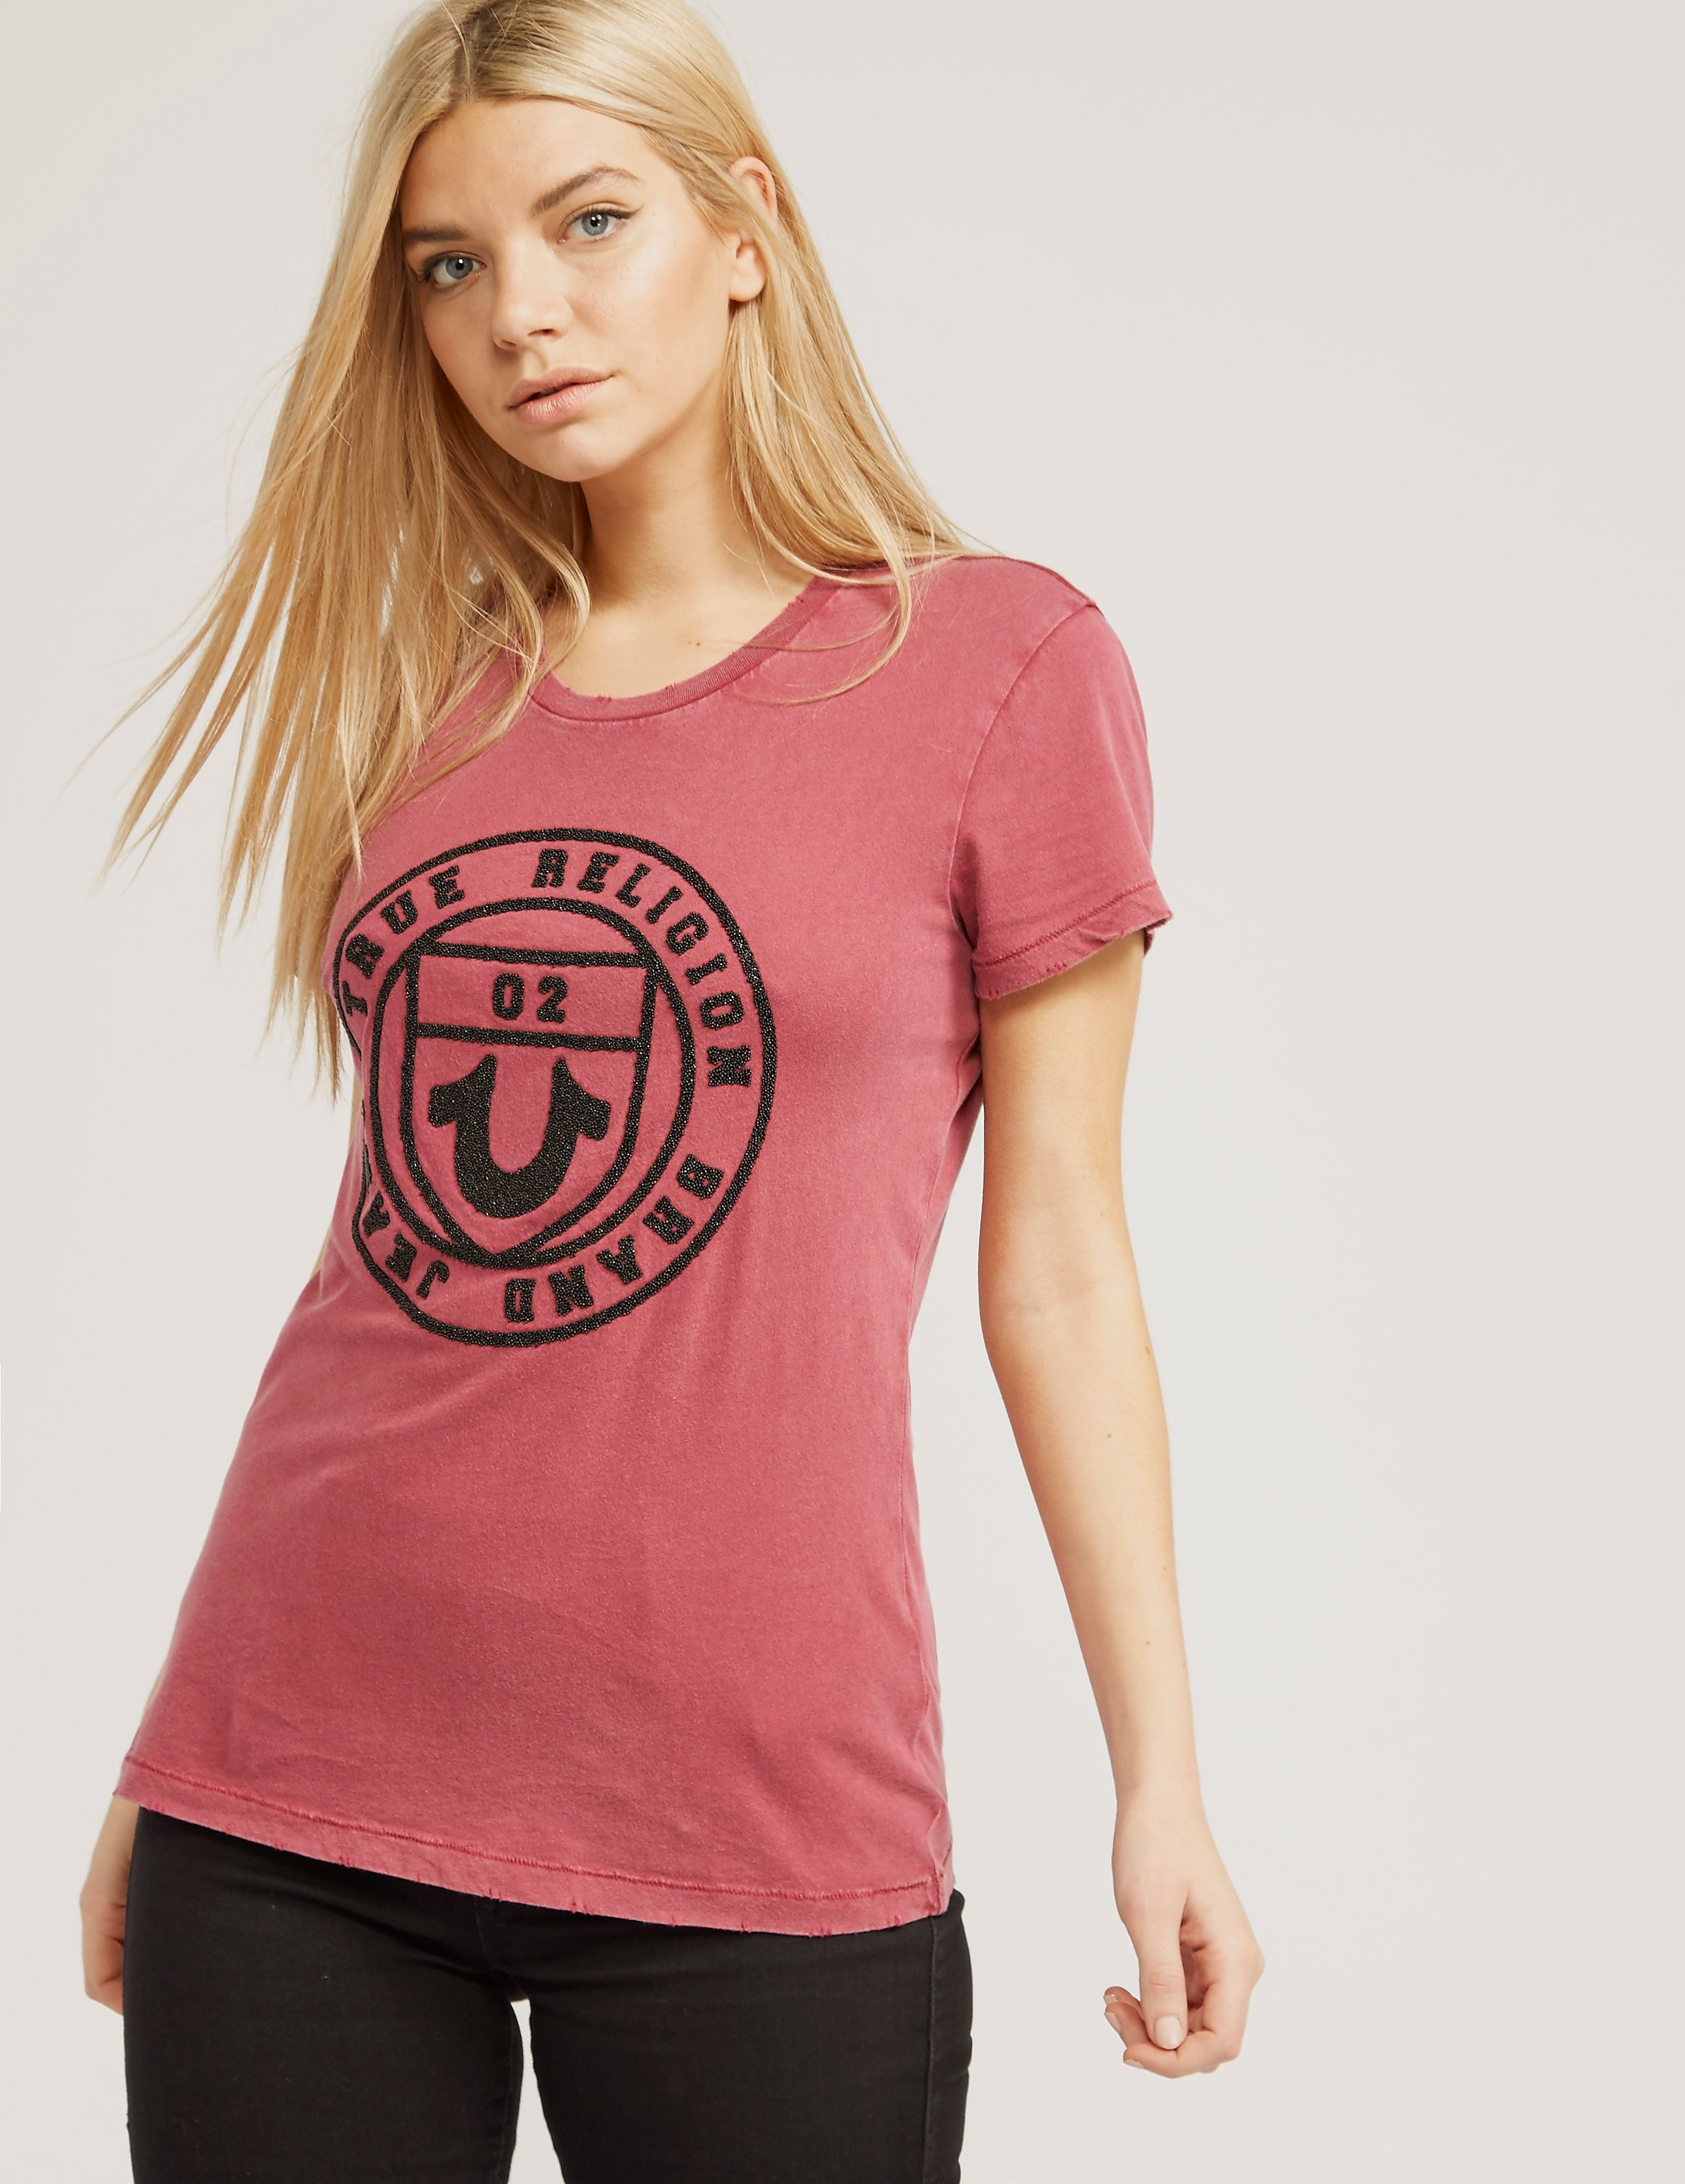 True Religion Caviar Bead T-Shirt